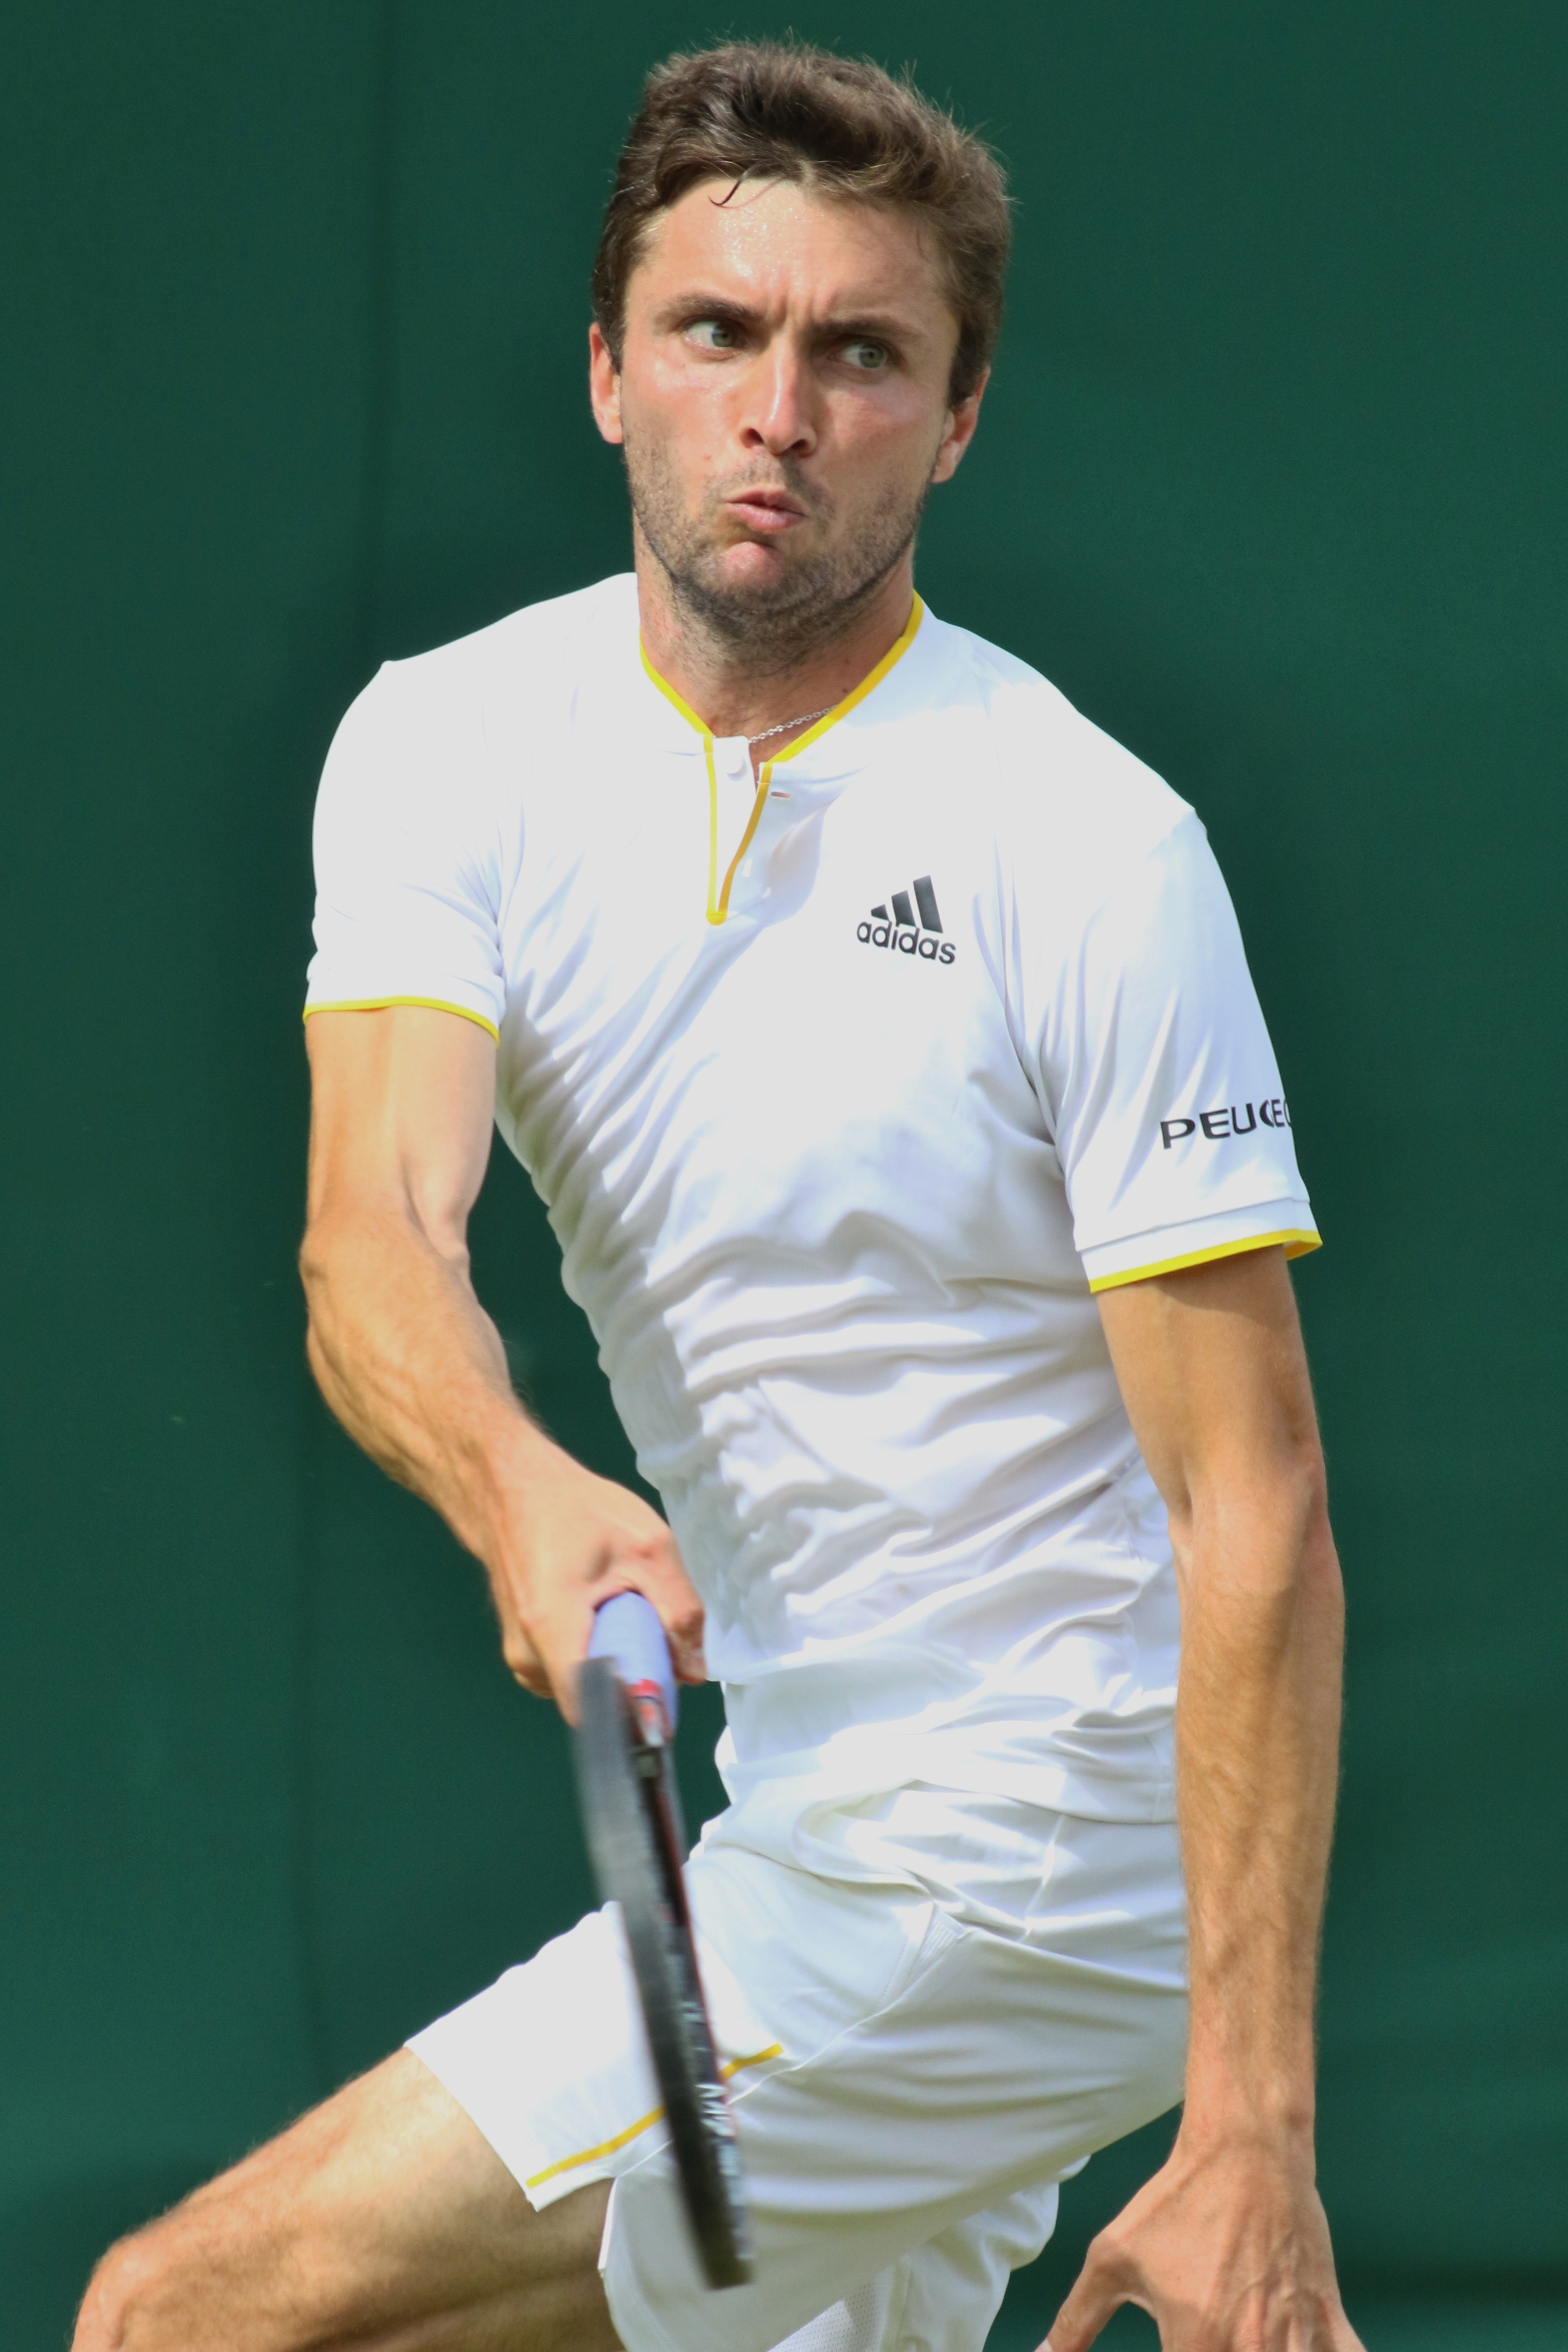 The 34-year old son of father Daniel Simon and mother Mireille Simon Gilles Simon in 2019 photo. Gilles Simon earned a 7.5 million dollar salary - leaving the net worth at 13 million in 2019